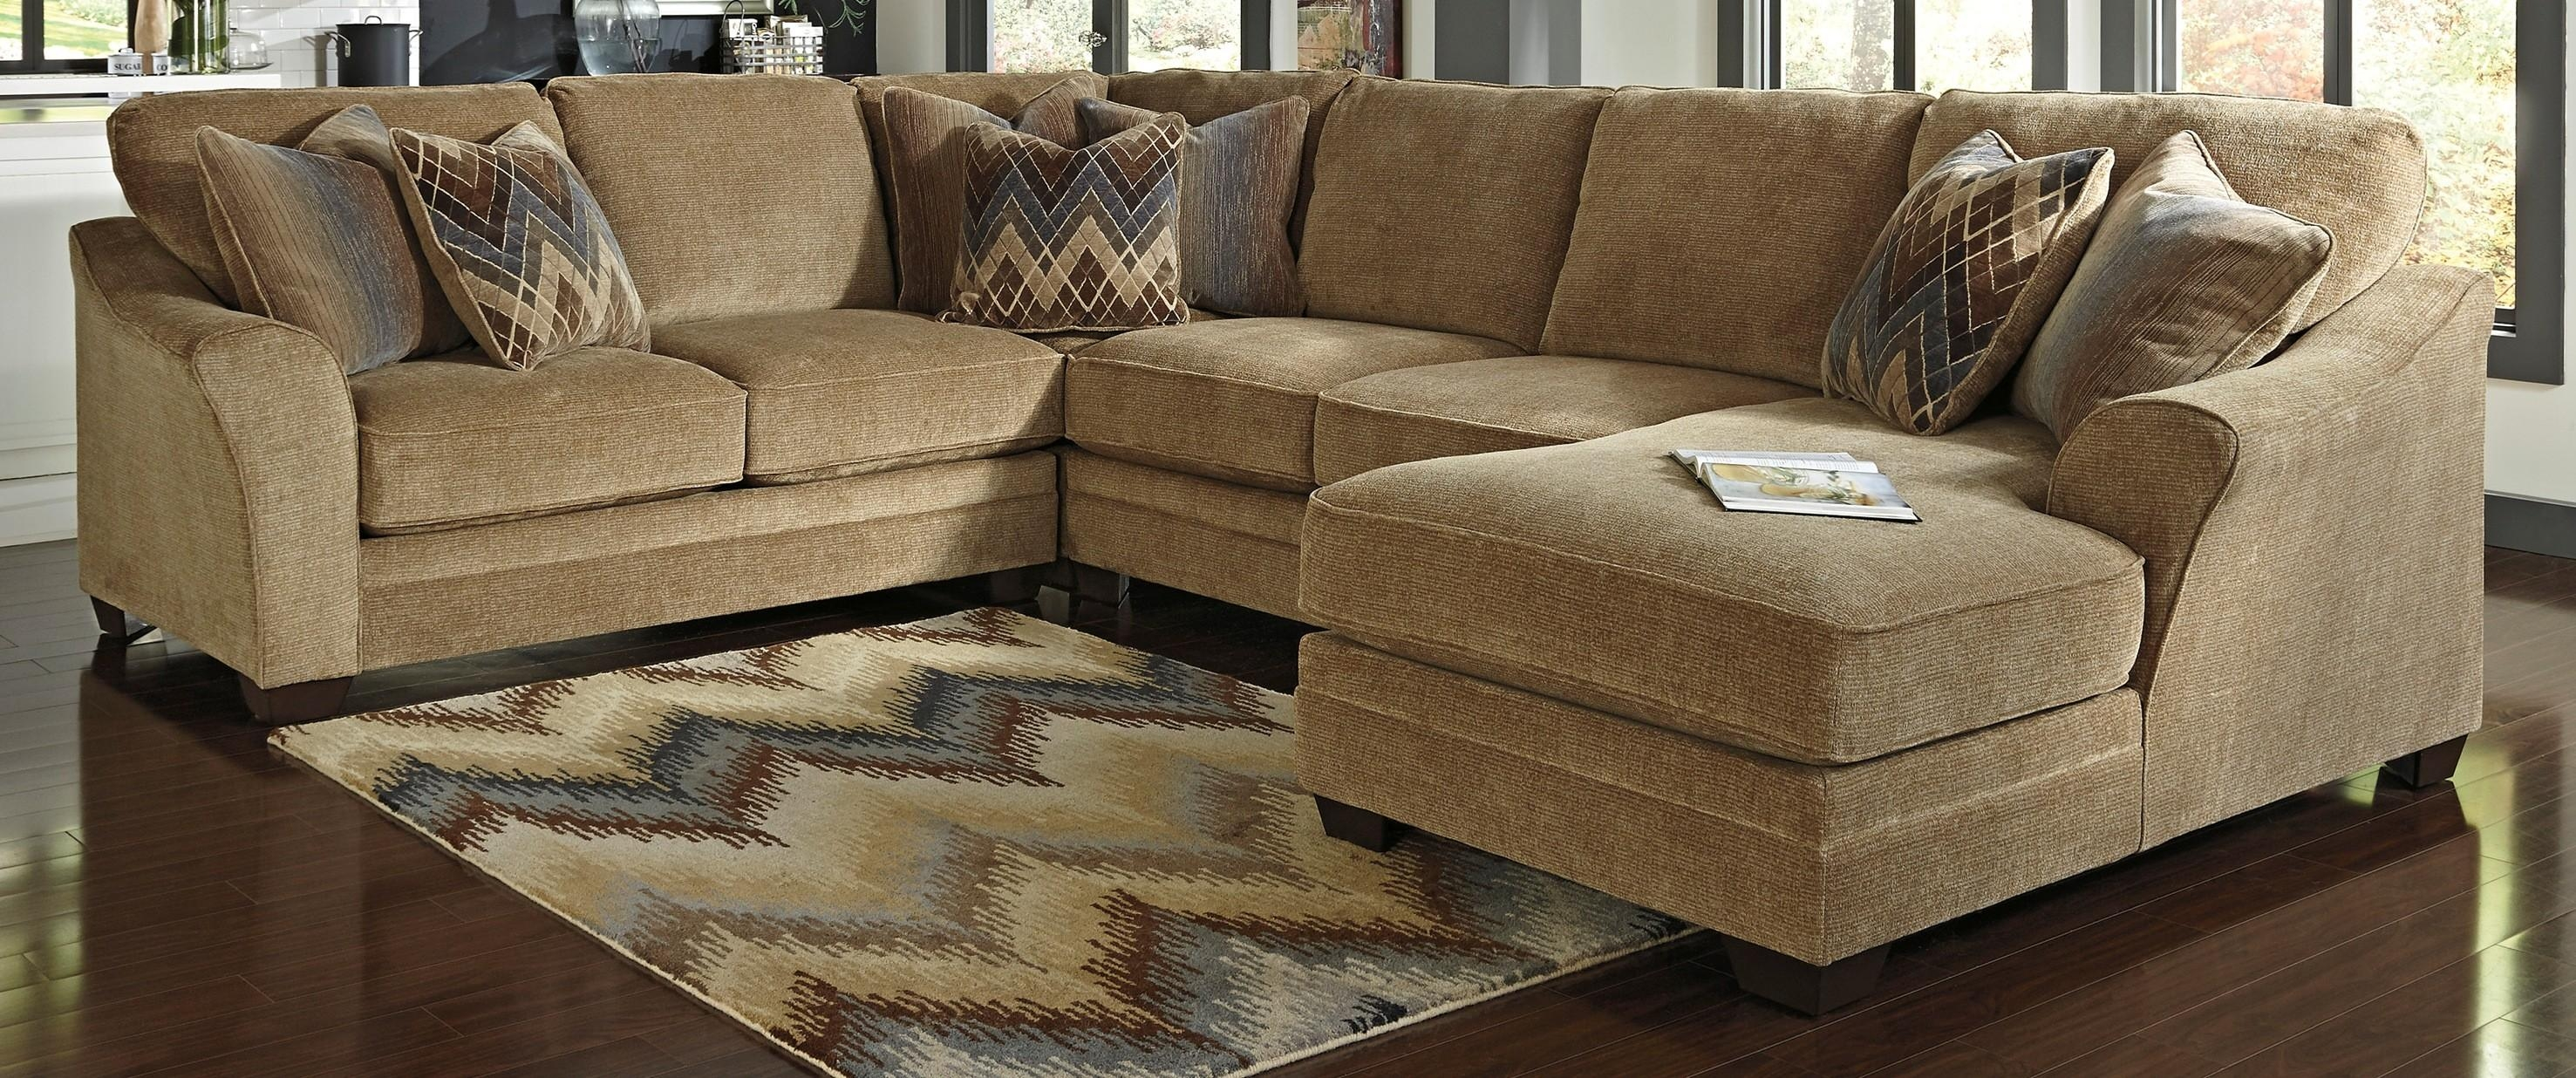 Decorating: Fill Your Living Room With Elegant Ashley Furniture In Ashley Furniture Grenada Sectional (View 11 of 15)